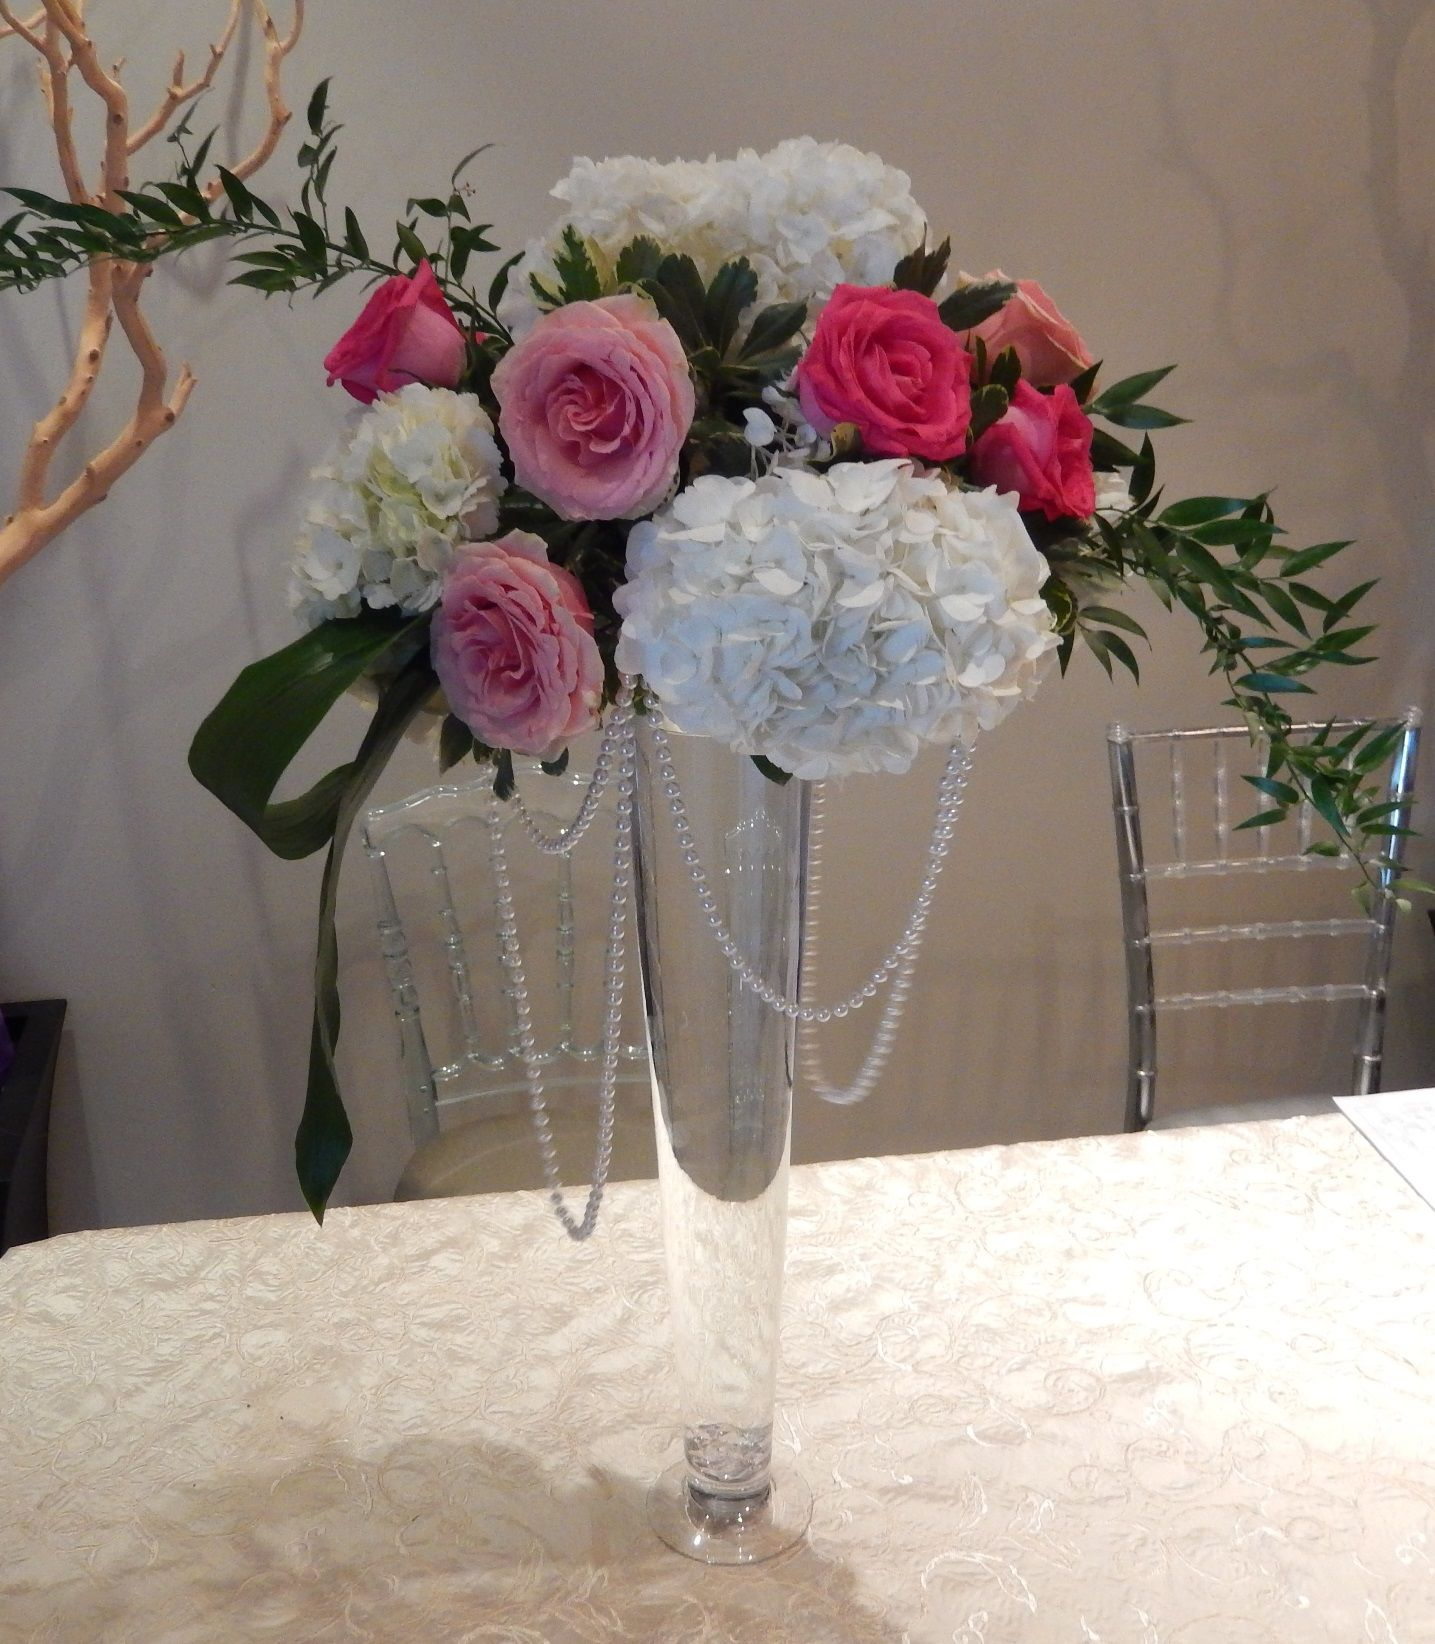 Wedding Flowers In February: Centre Piece For A February Wedding; Simple Design From